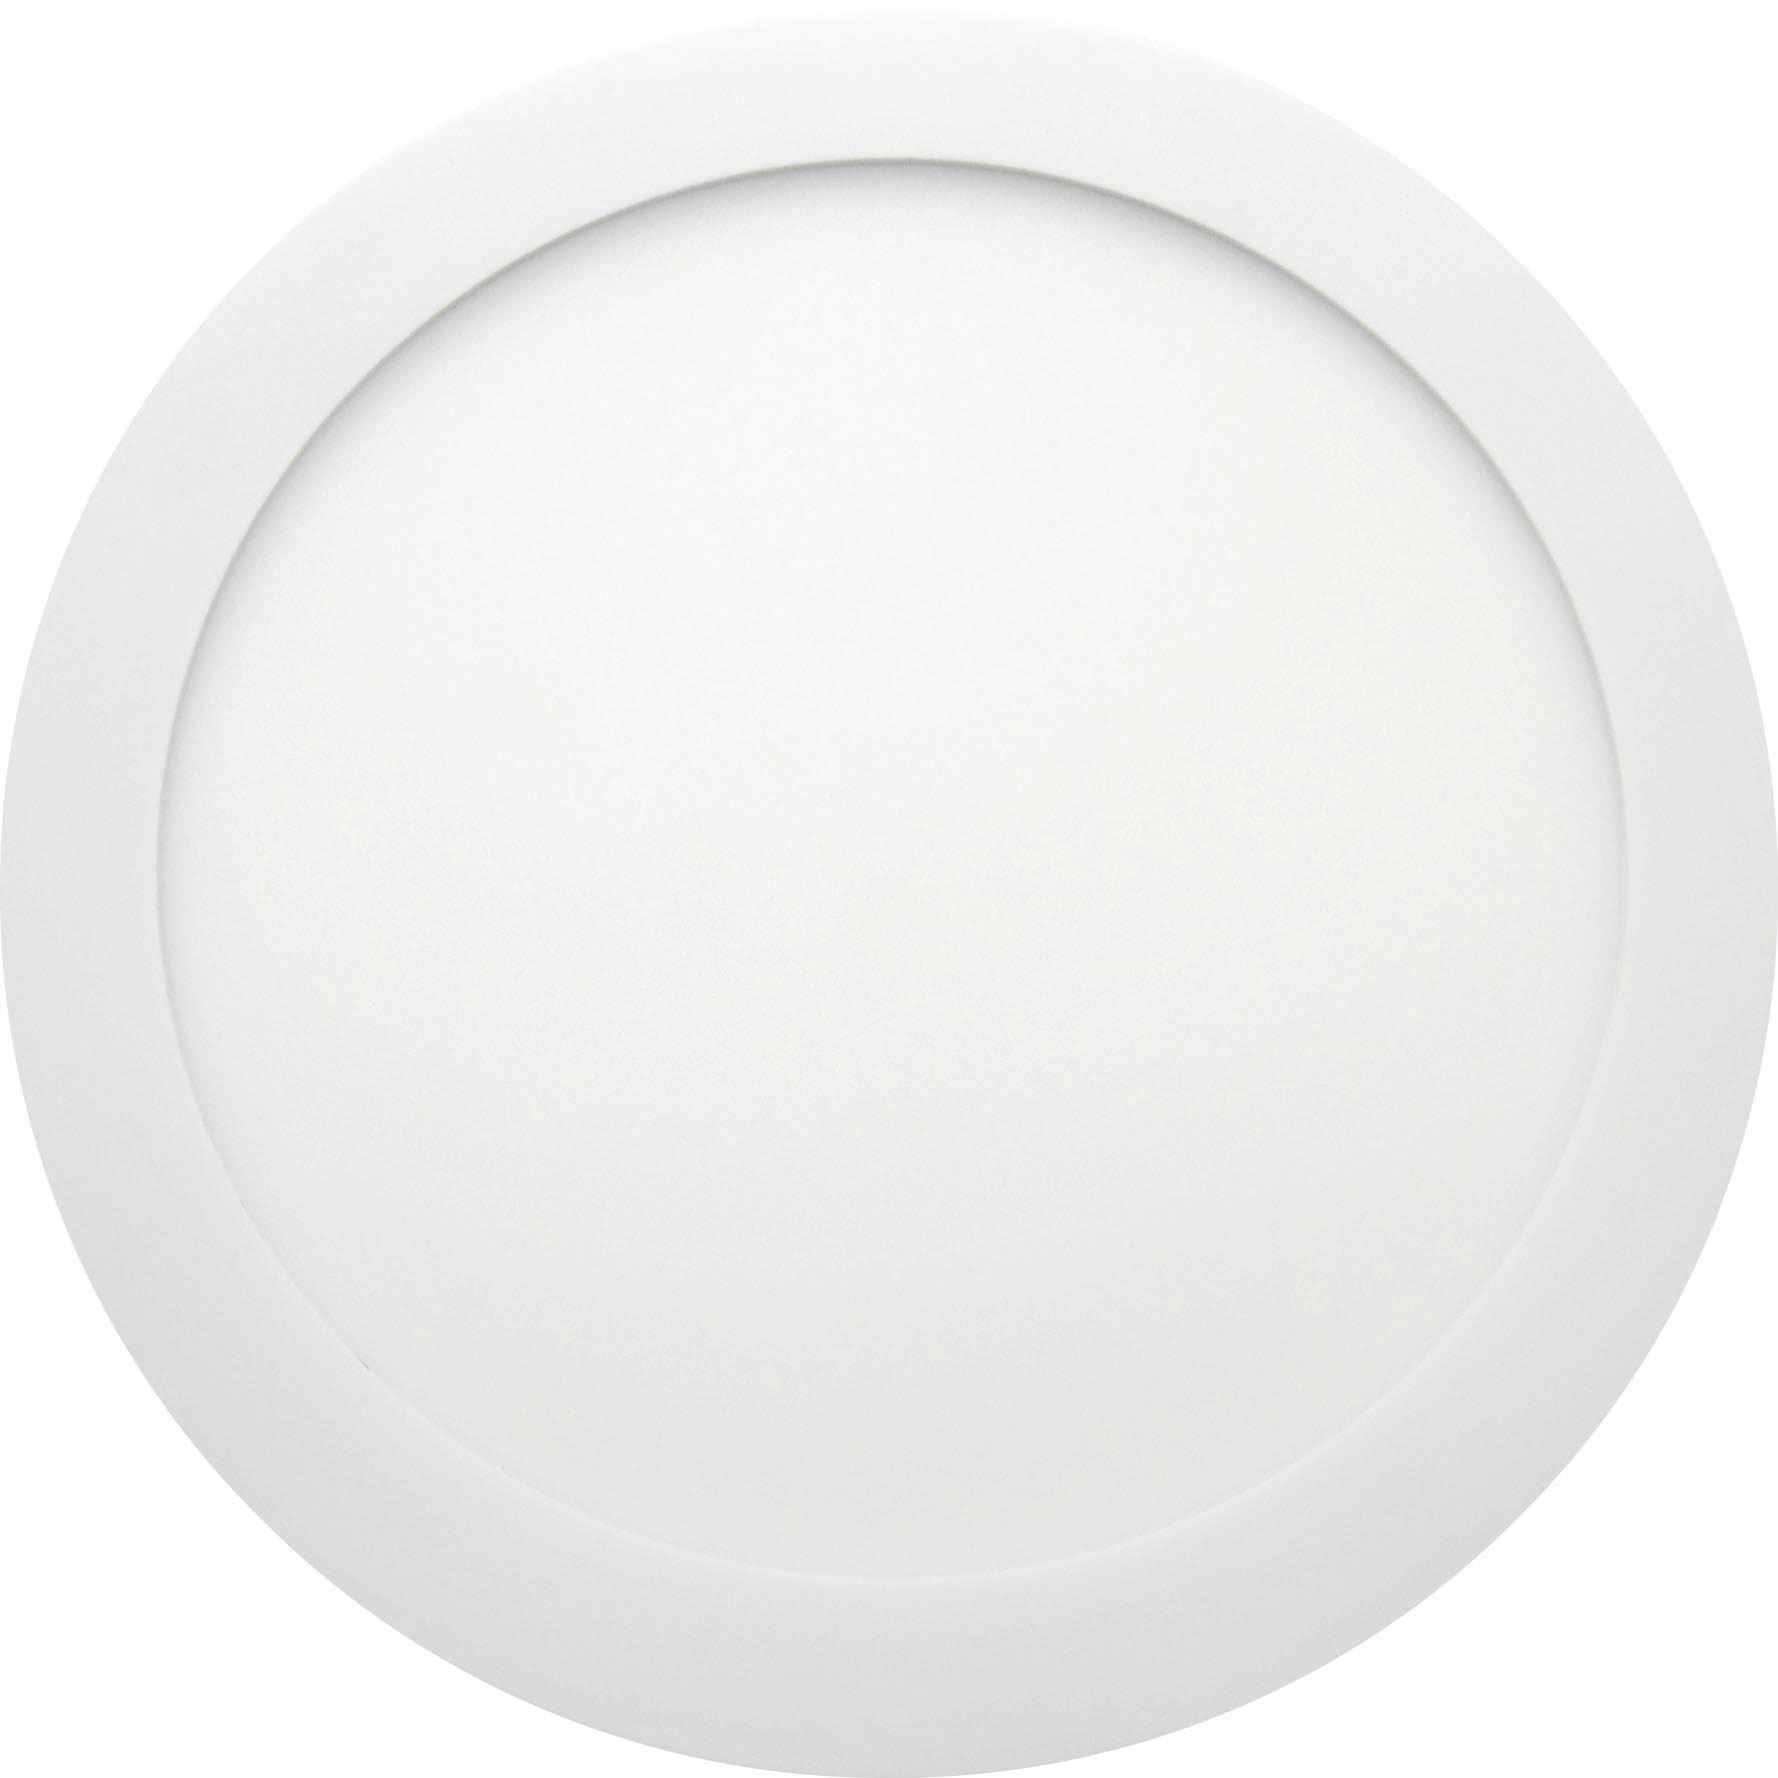 BL LED PANEL 240MM 18W 840 ROUND D 50K DIMMABLE ARIAL